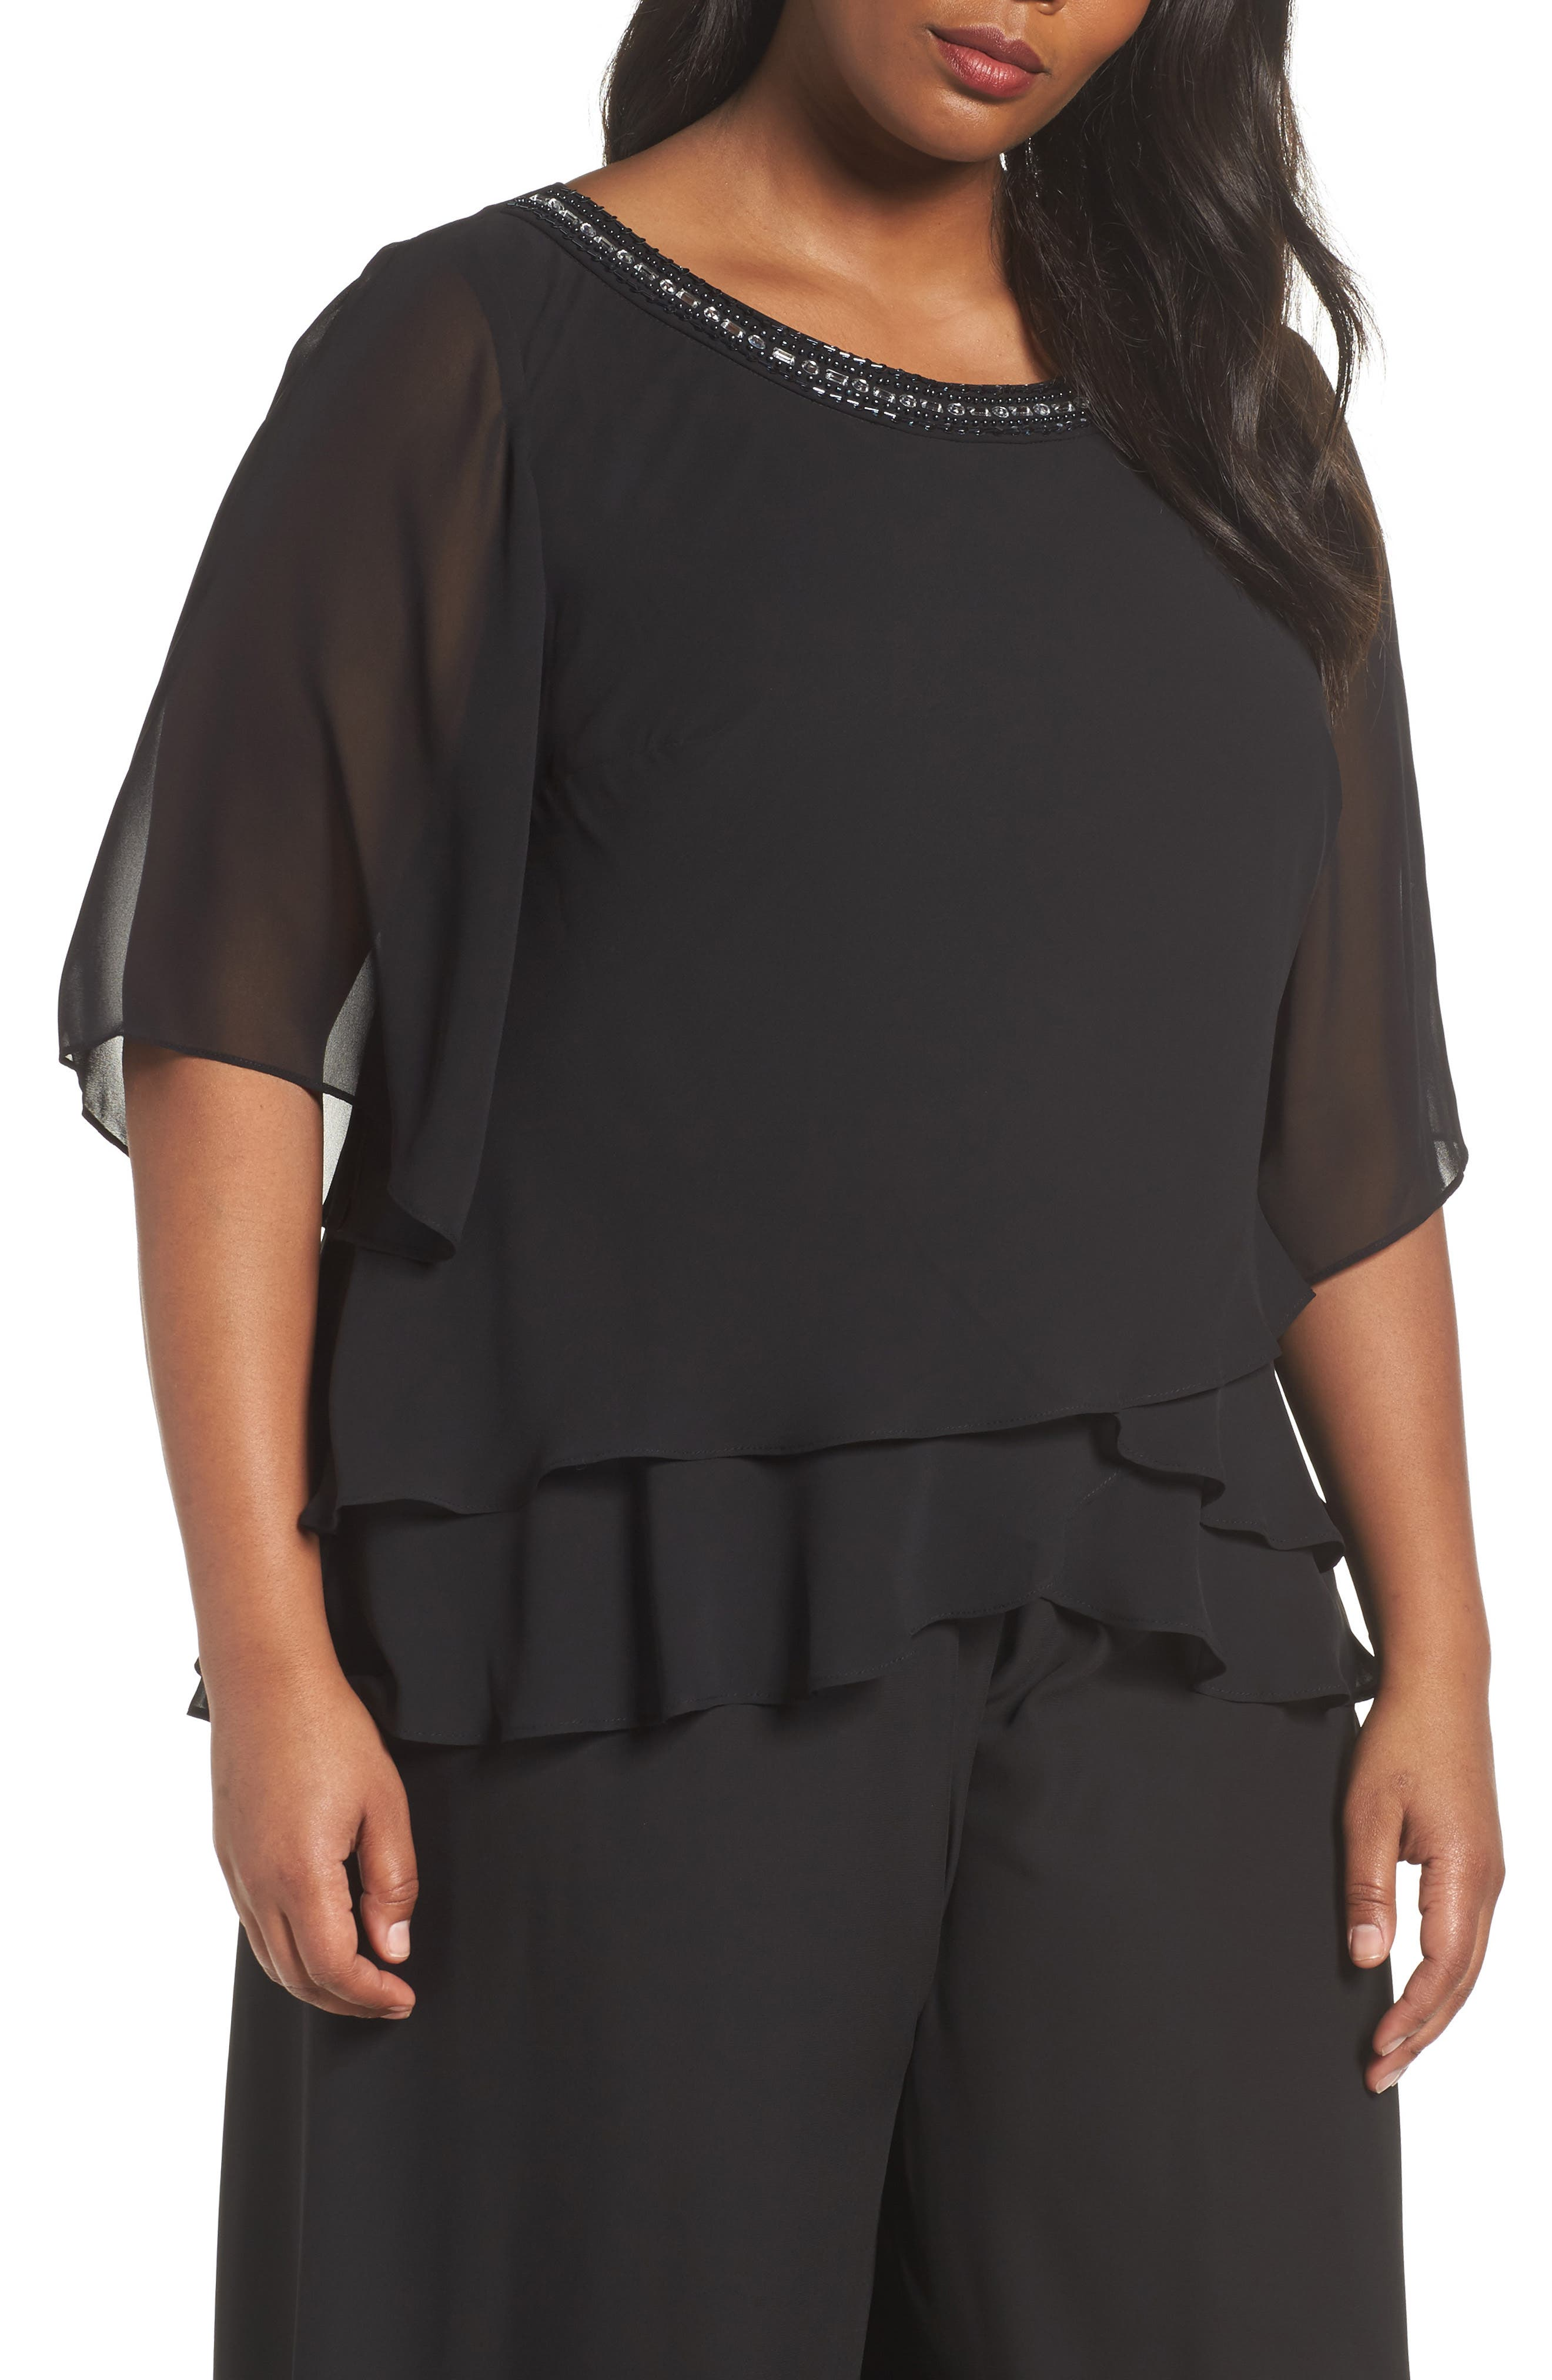 Alternate Image 1 Selected - Alex Evenings Embellished Tiered Chiffon Blouse (Plus Size)